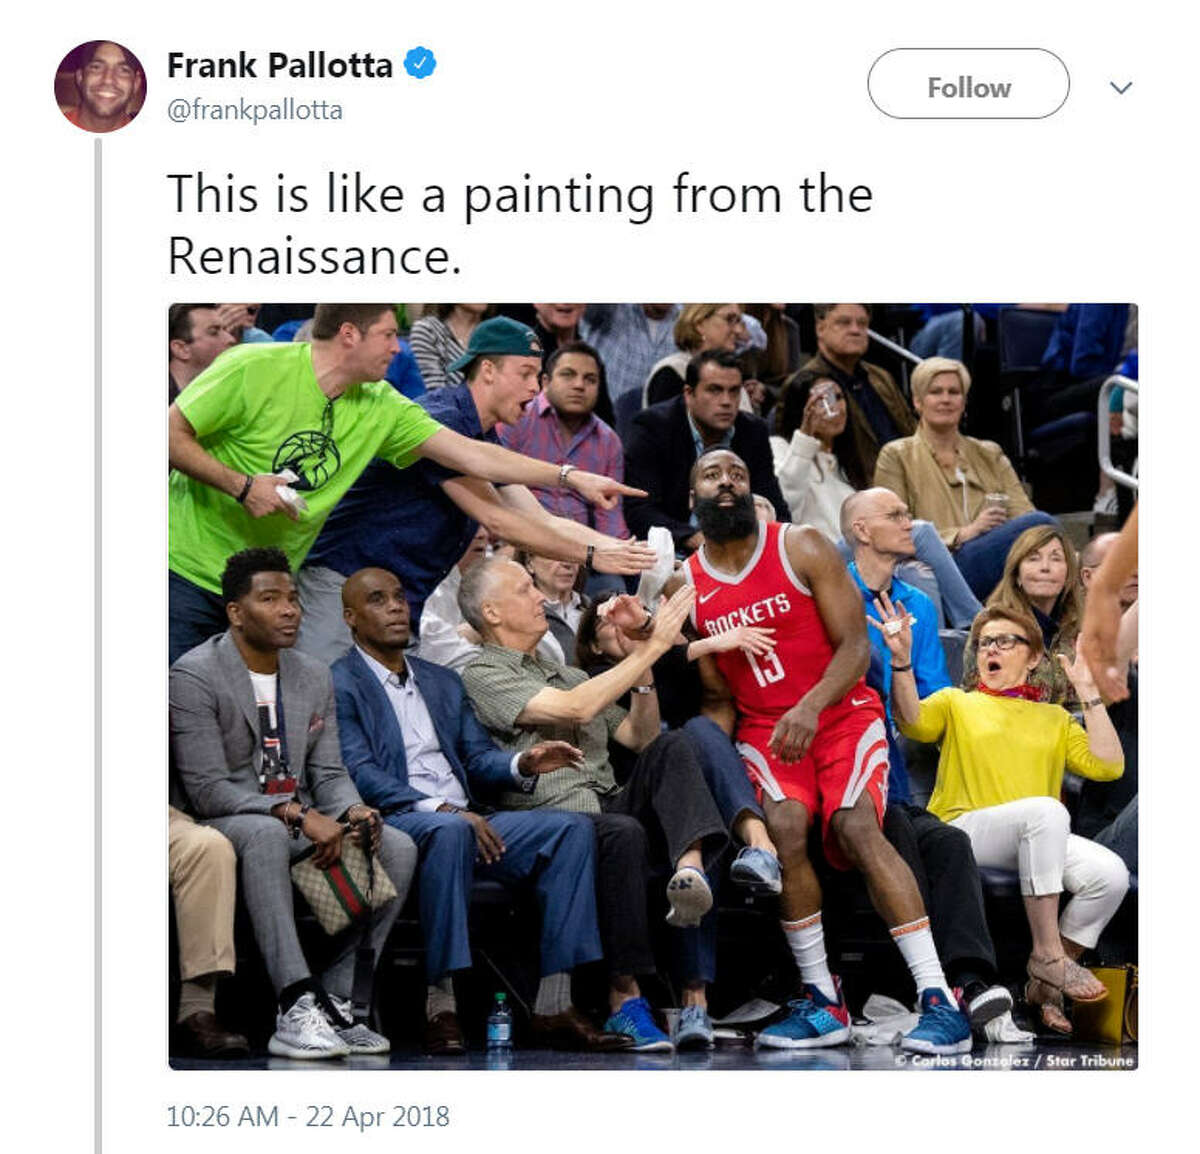 A photo of James Harden from game three of the Houston Rockets vs. Minnesota Timberwolves playoff series became a Twitter sensation after someone likened it to a Renaissance era painting.Image source: Twitter